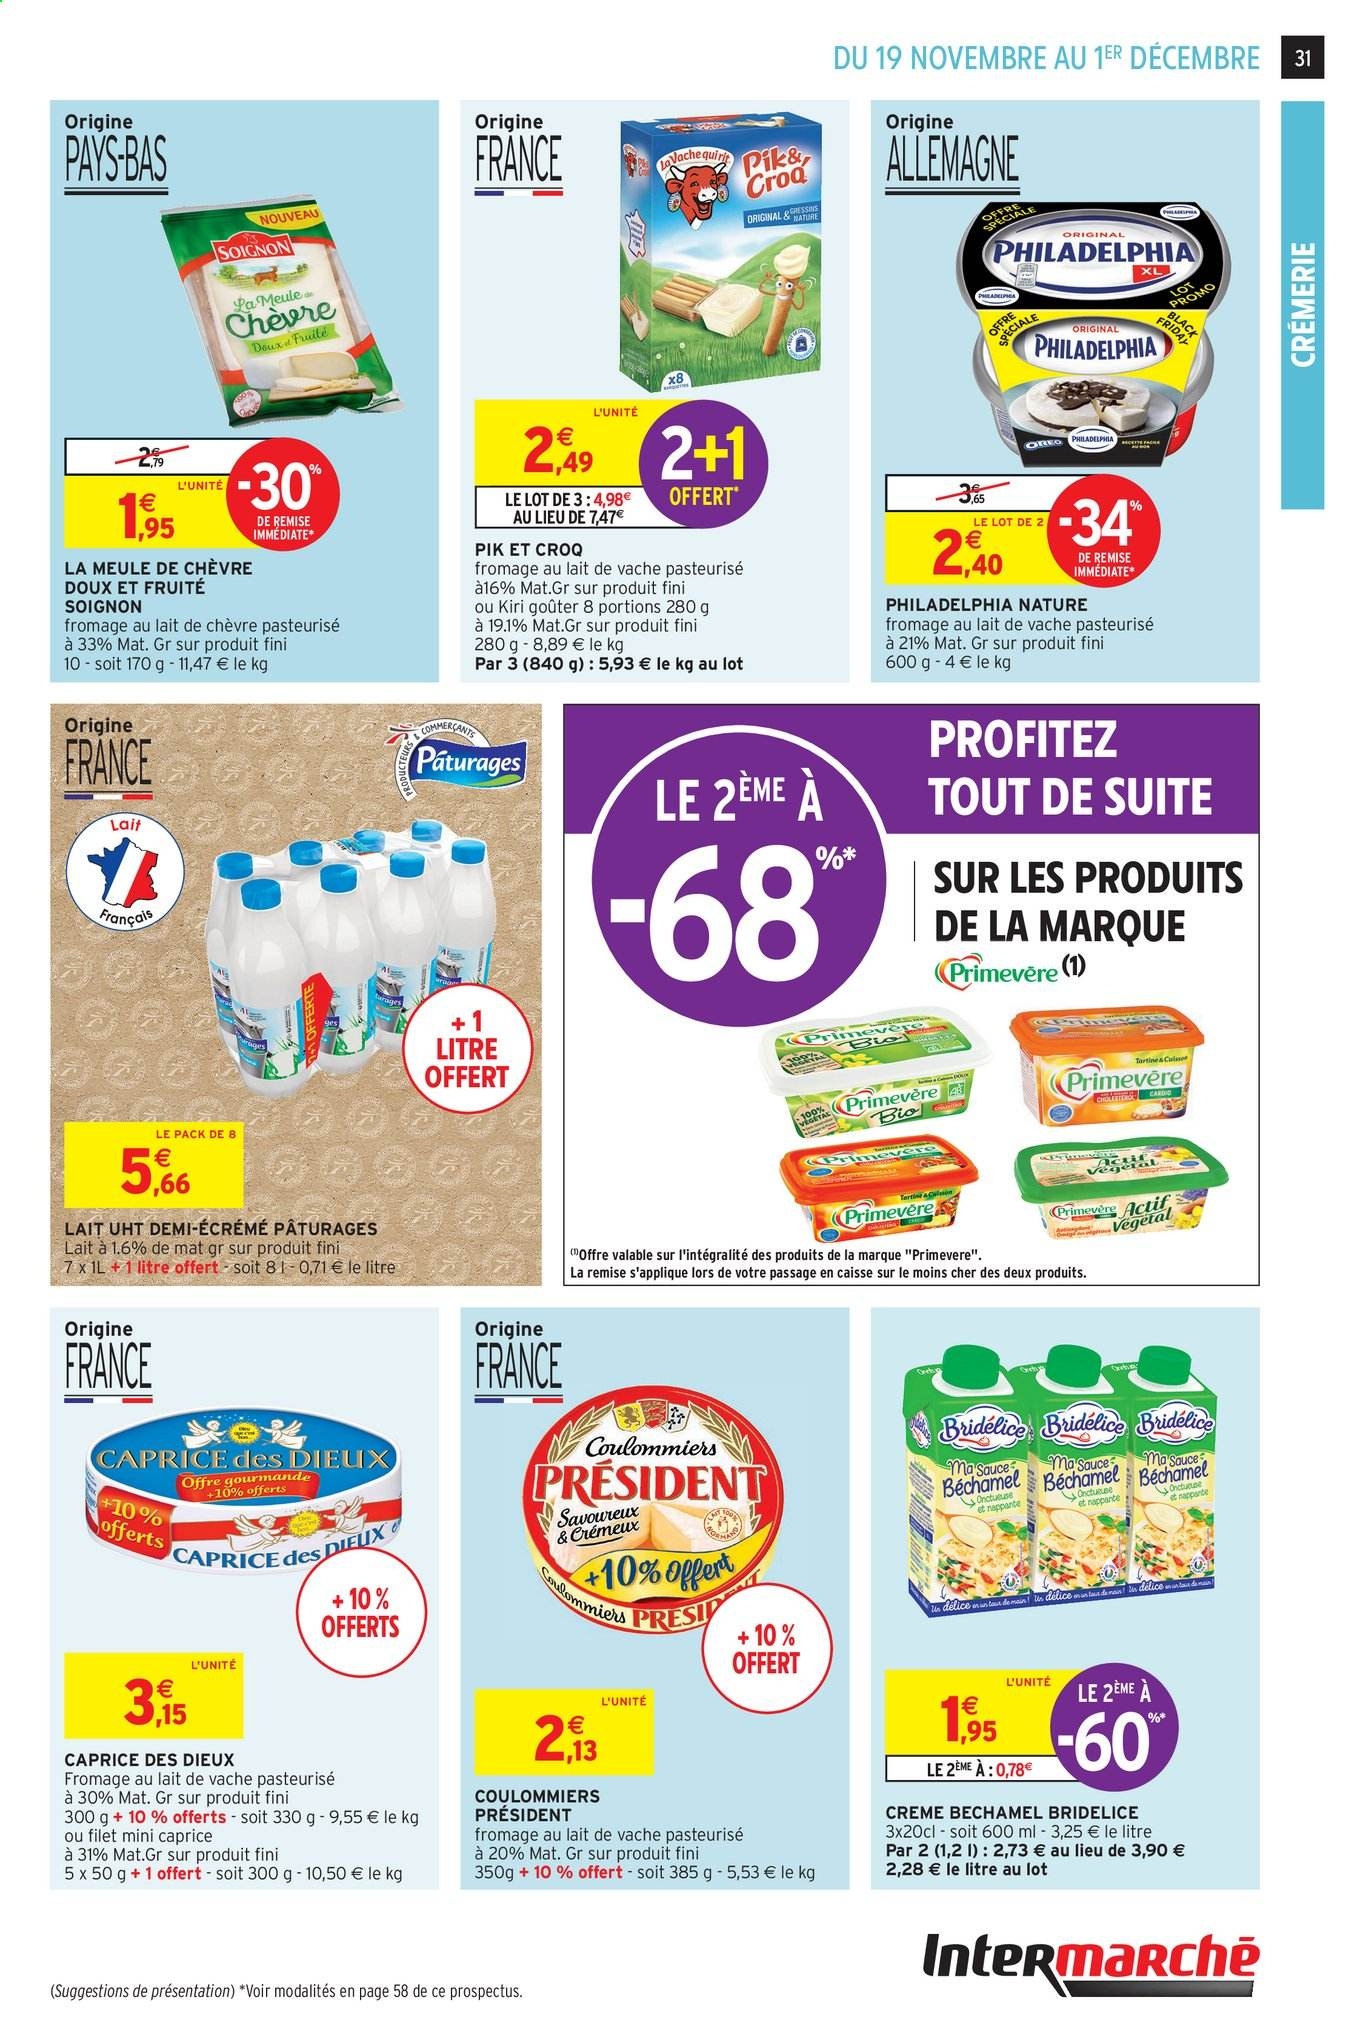 Catalogue Intermarché - 19.11.2019 - 01.12.2019. Page 27.